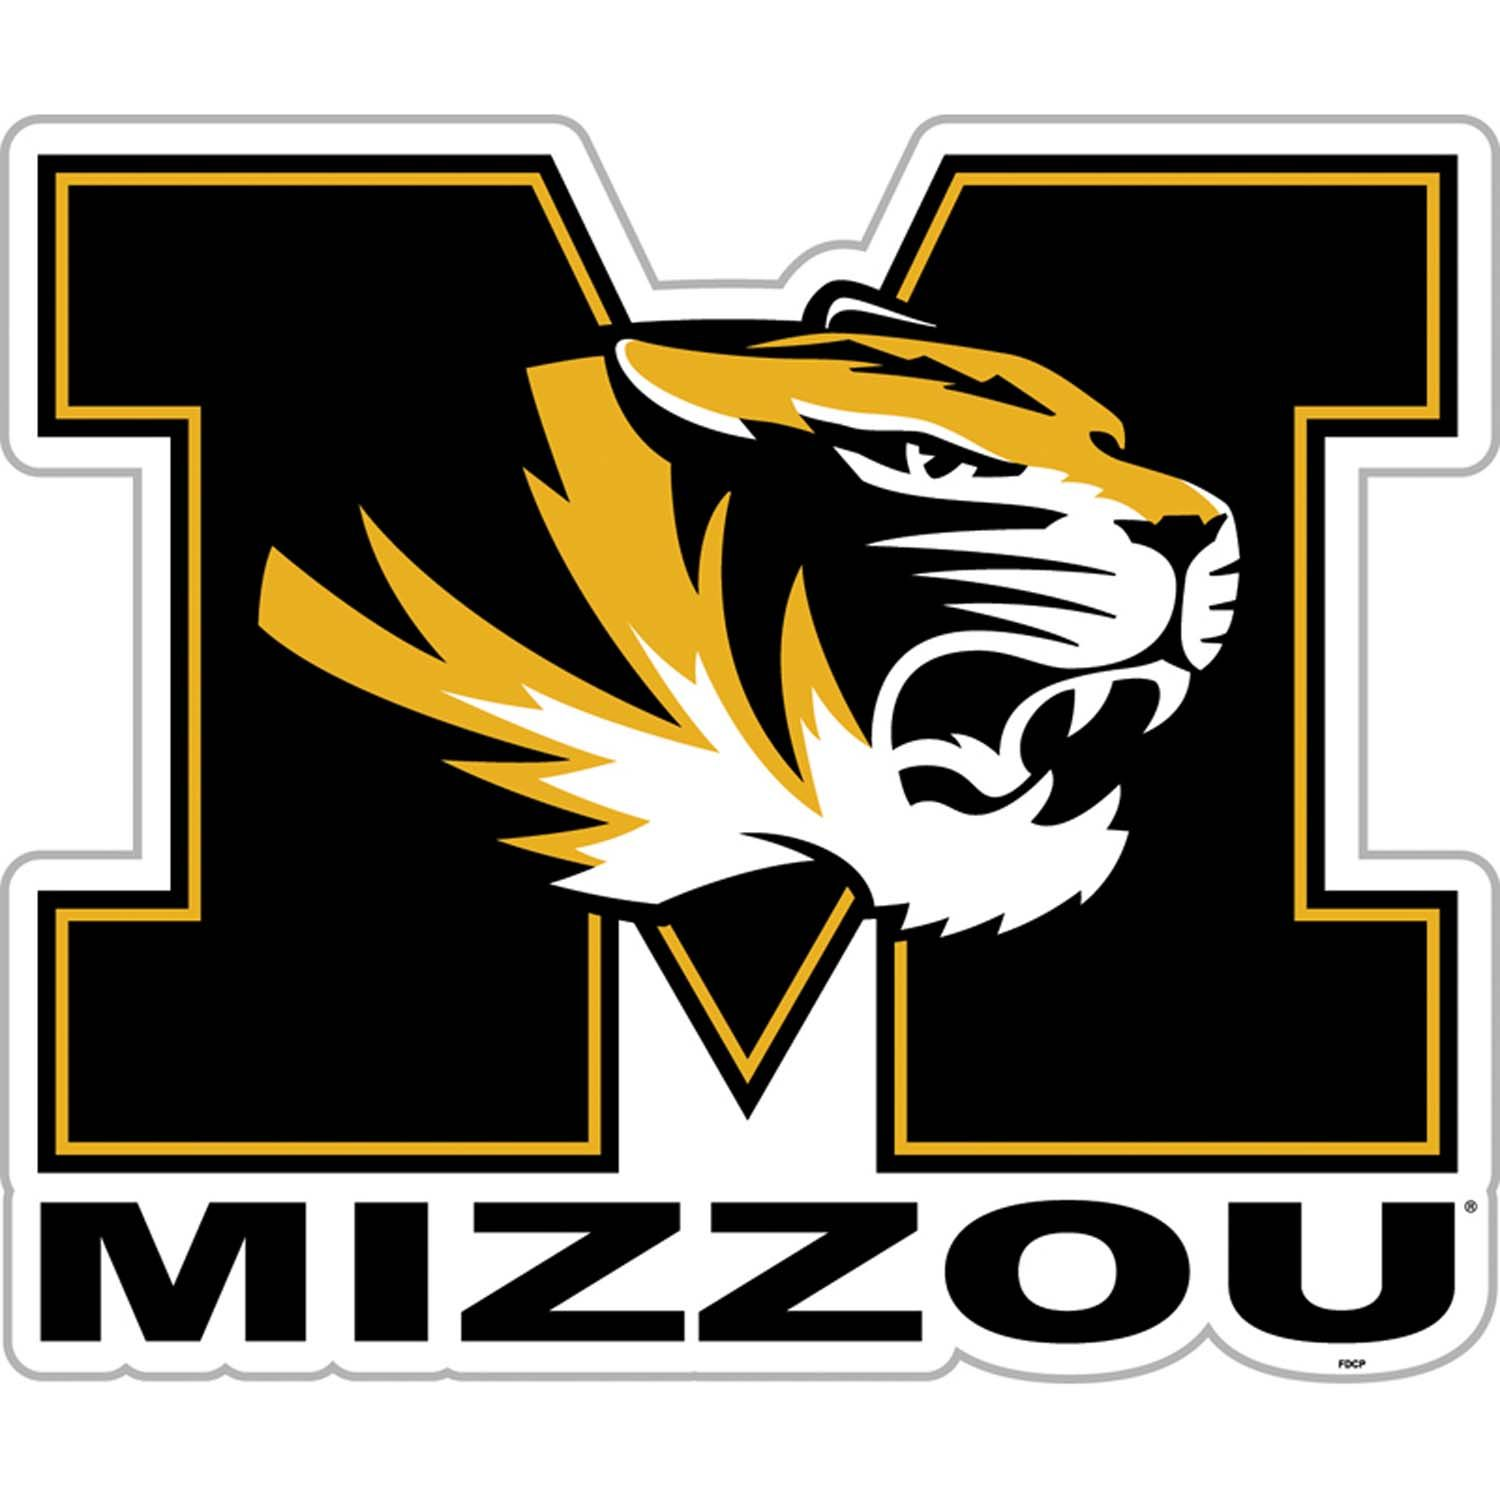 University of Missouri (Mizzou).